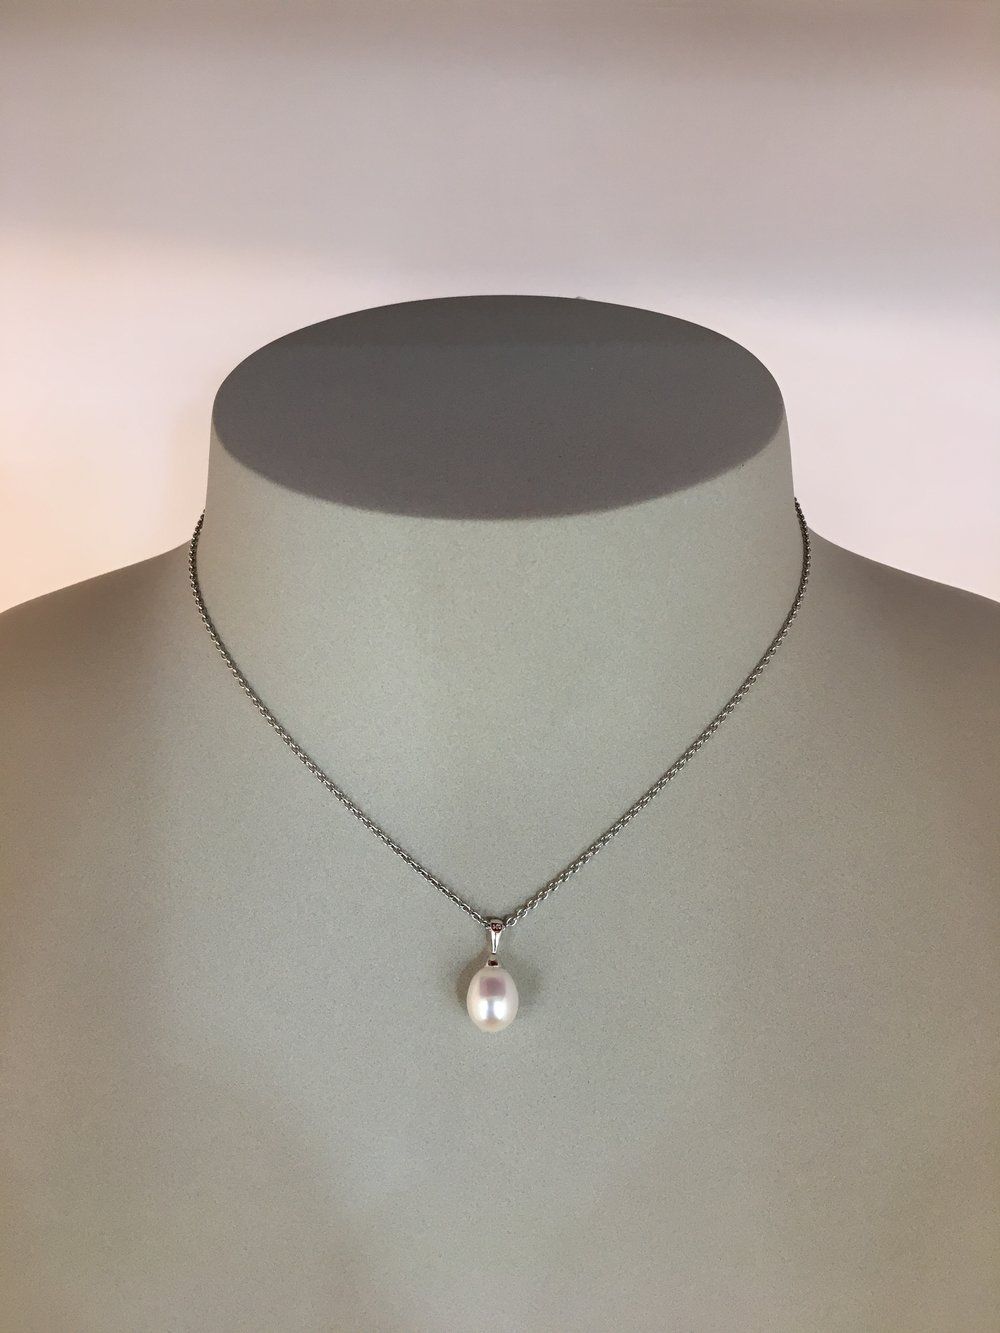 14ct White Gold Pearl Pendant & Chain